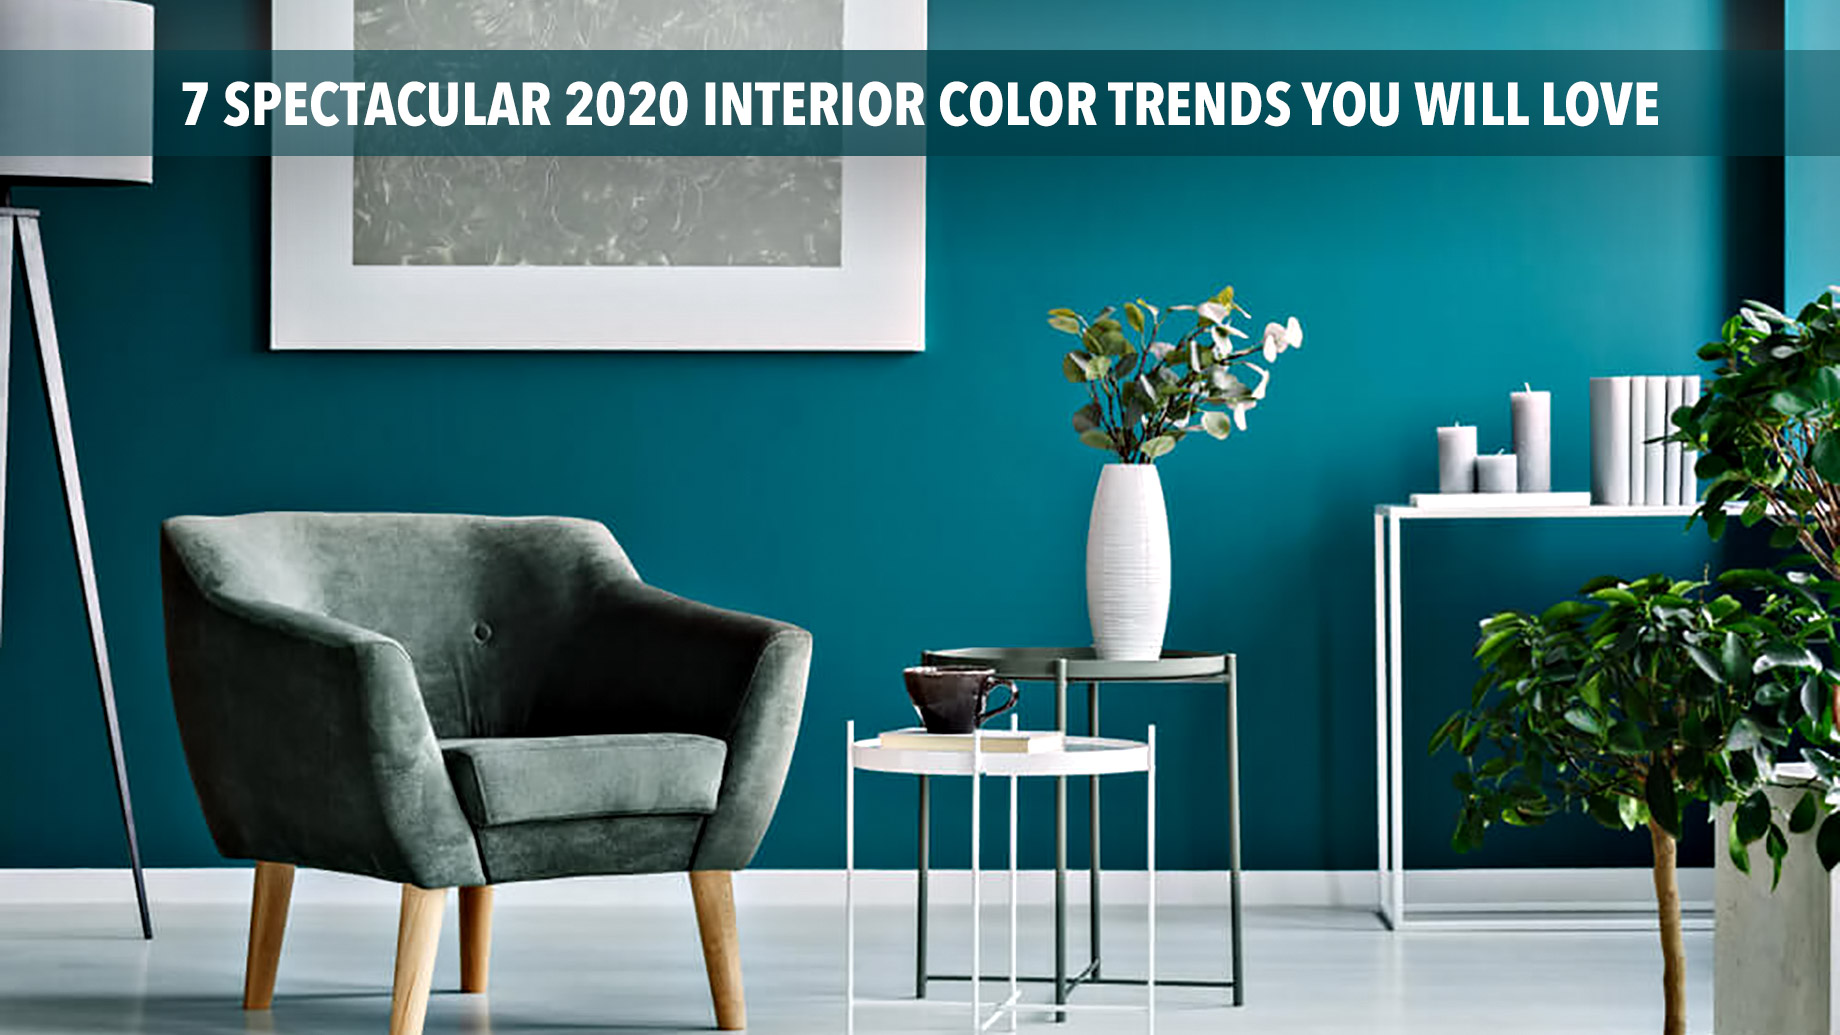 7 Spectacular 2020 Interior Color Trends You Will Love